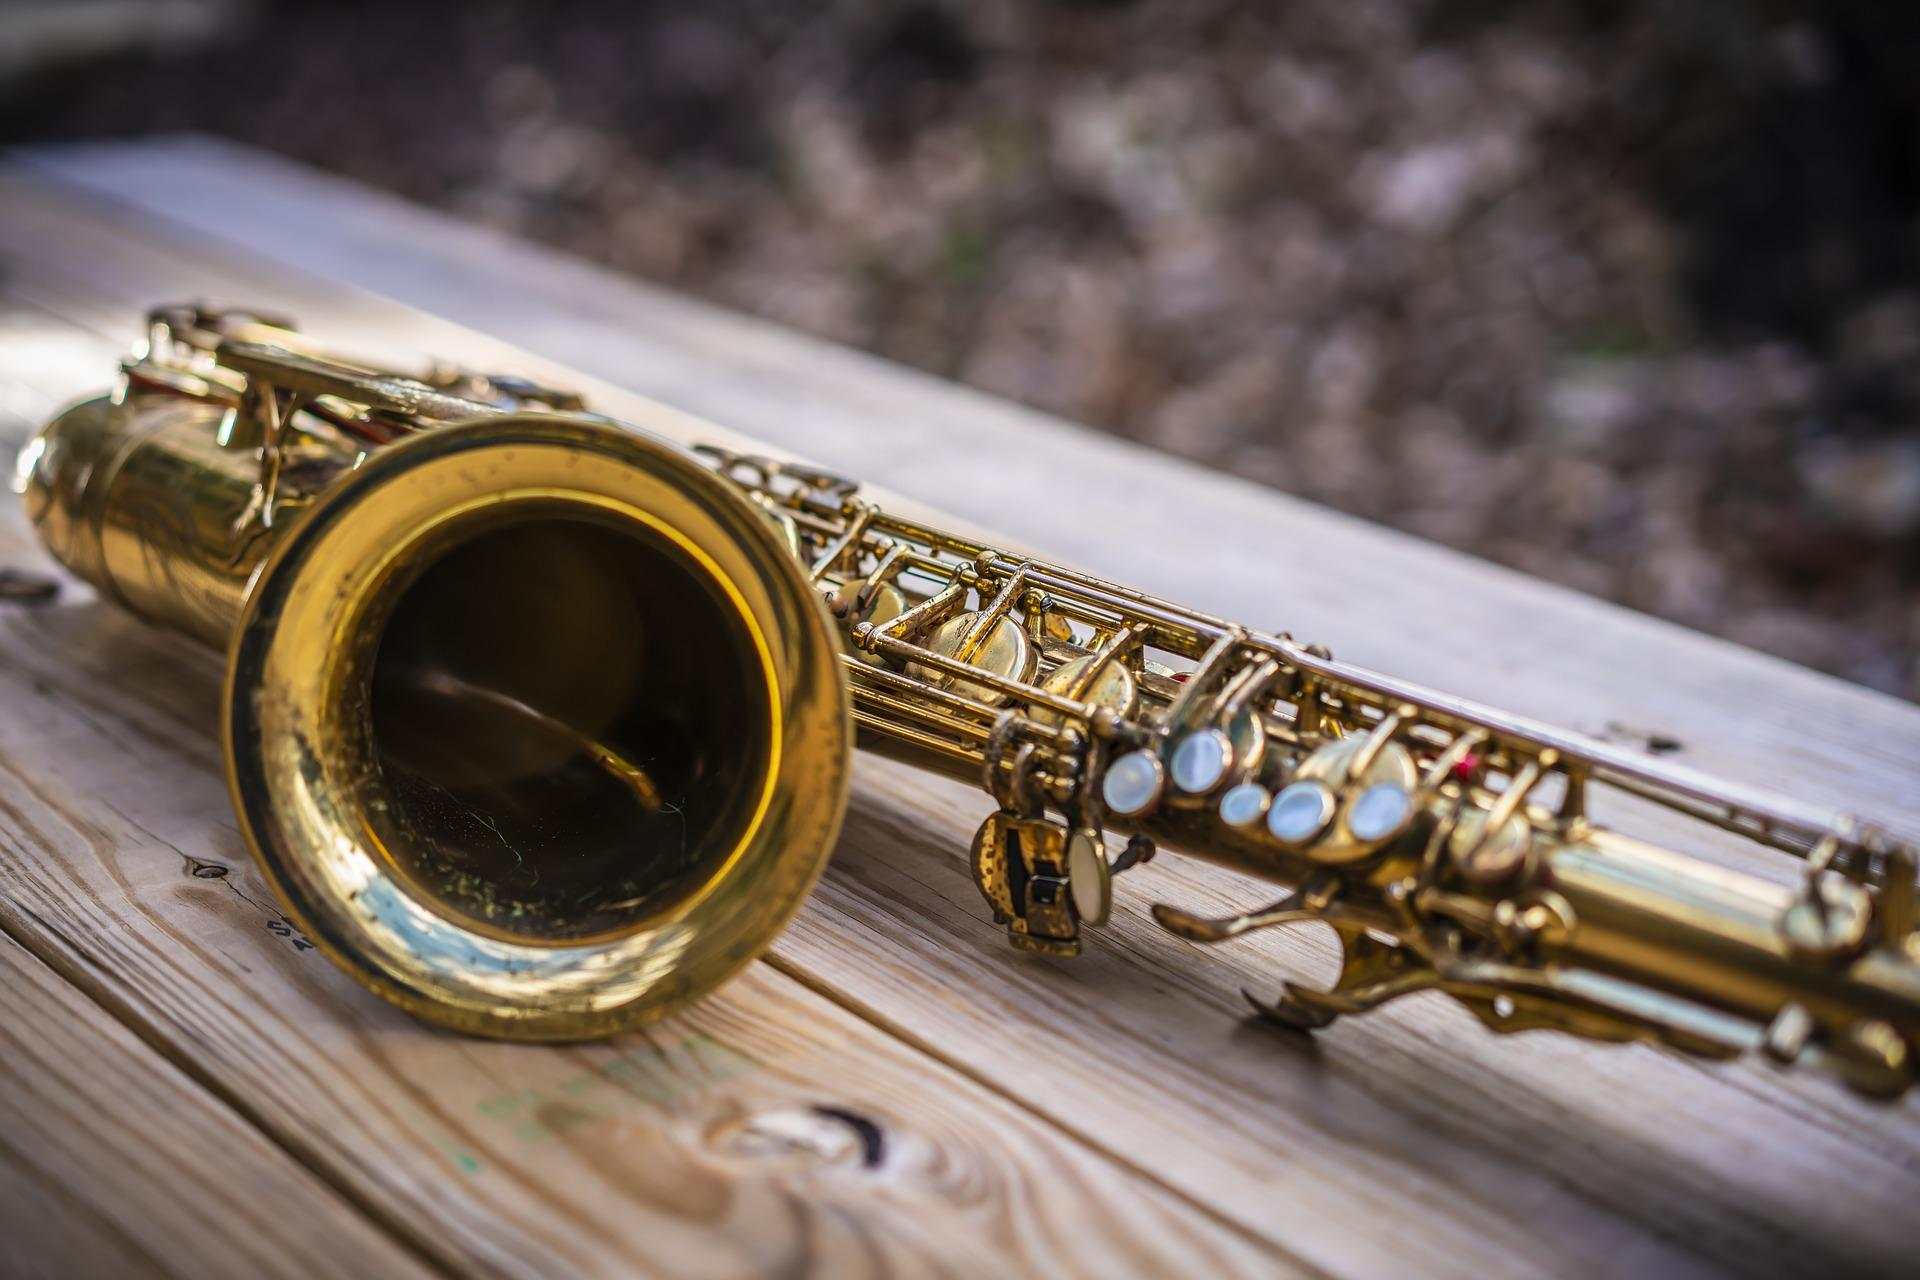 Saxophone Care and Maintenance: How to Clean Your Saxophone